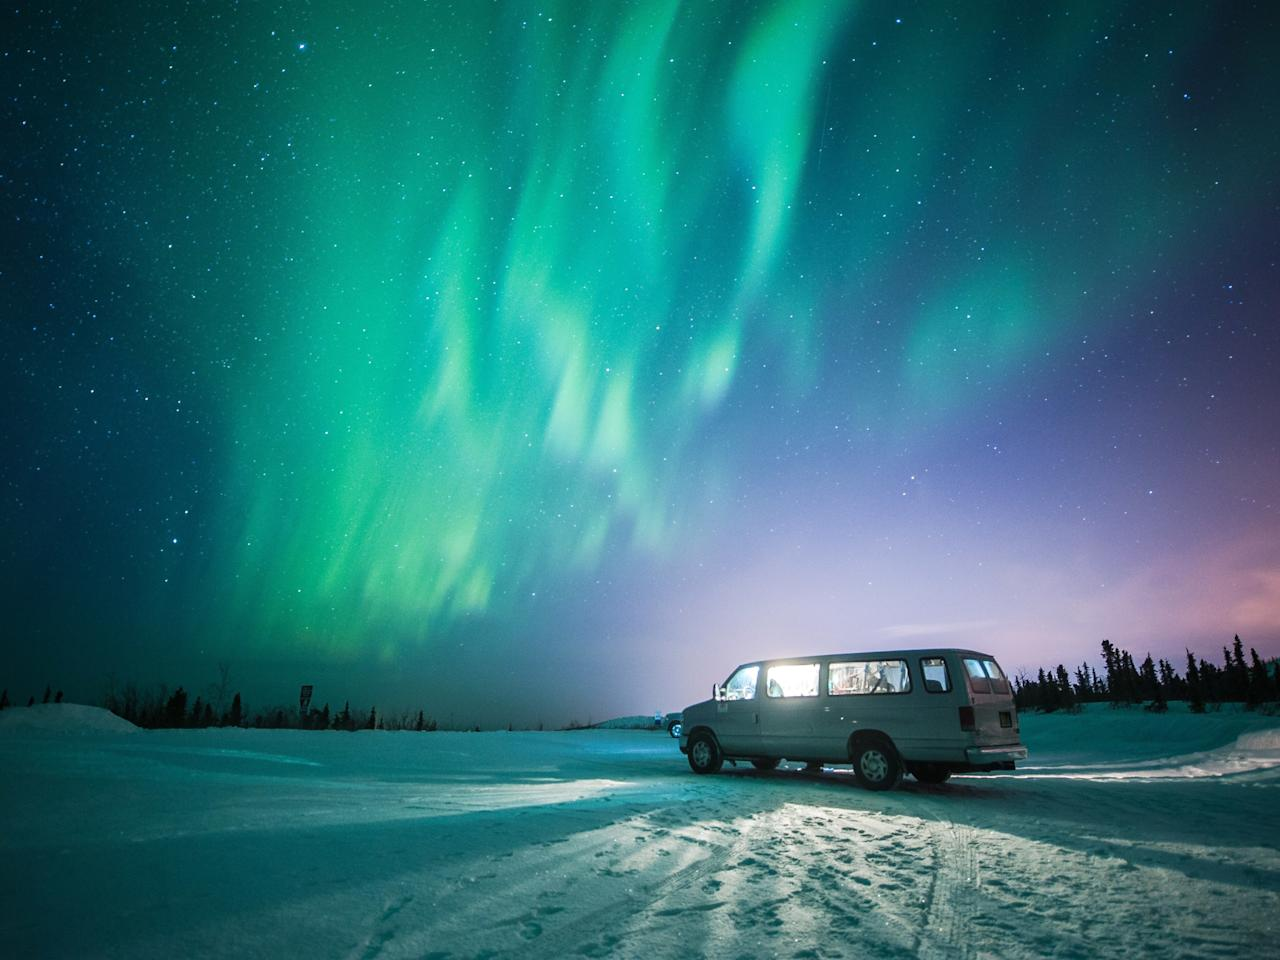 "While summer in Alaska offers lush vegetation and the elusive midnight sun, winter brings out the far north's star attraction: the <a rel=""nofollow"" href=""https://www.cntraveler.com/stories/2011-11-07/best-places-to-stay-to-see-the-northern-lights?mbid=synd_yahoo_rss"">Northern Lights</a>. Fairbanks (the state's second-largest city) is a particularly ideal place to view the phenomenon, with cloud-free nights and a lengthy aurora season (August 21 through April 21). For a truly unique experience, head to <a rel=""nofollow"" href=""https://www.cntraveler.com/galleries/2014-05-26/swimming-spots-united-states-summer-getaway-photos?mbid=synd_yahoo_rss"">Chena Hot Springs Resort</a>—one of several hot springs resorts just outside of the city—to watch the light show from the warmth of a mineral pool."